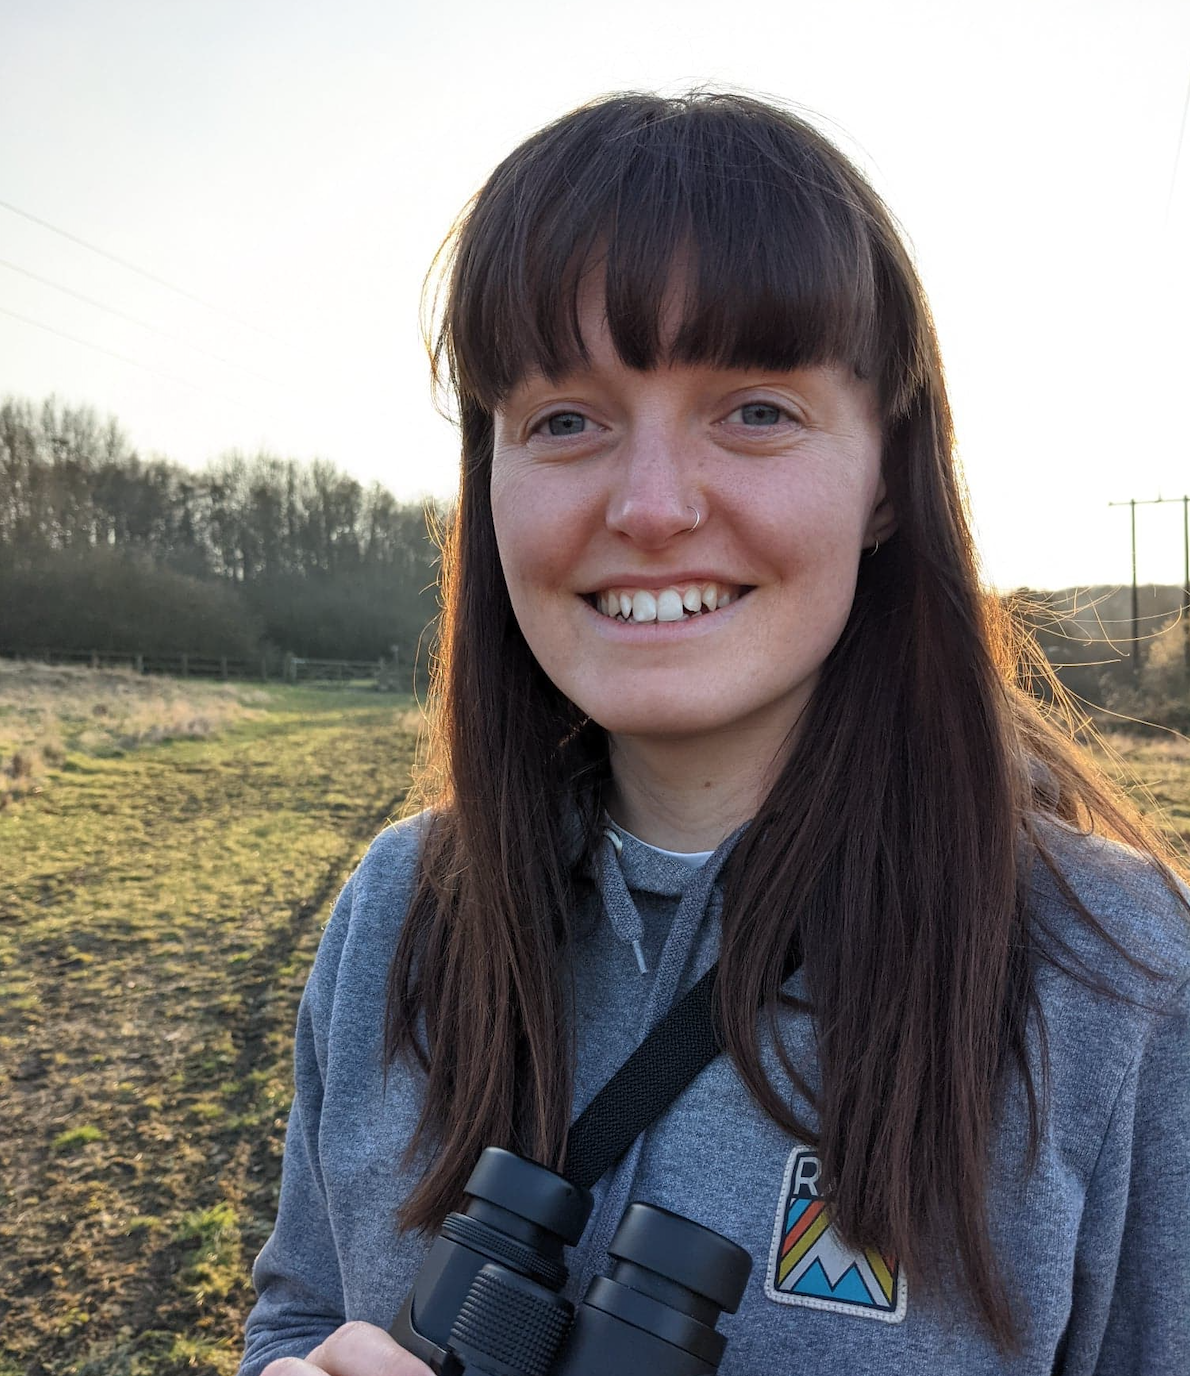 Jasmine smiling at the camera holding binoculars and standing in a sunny field.